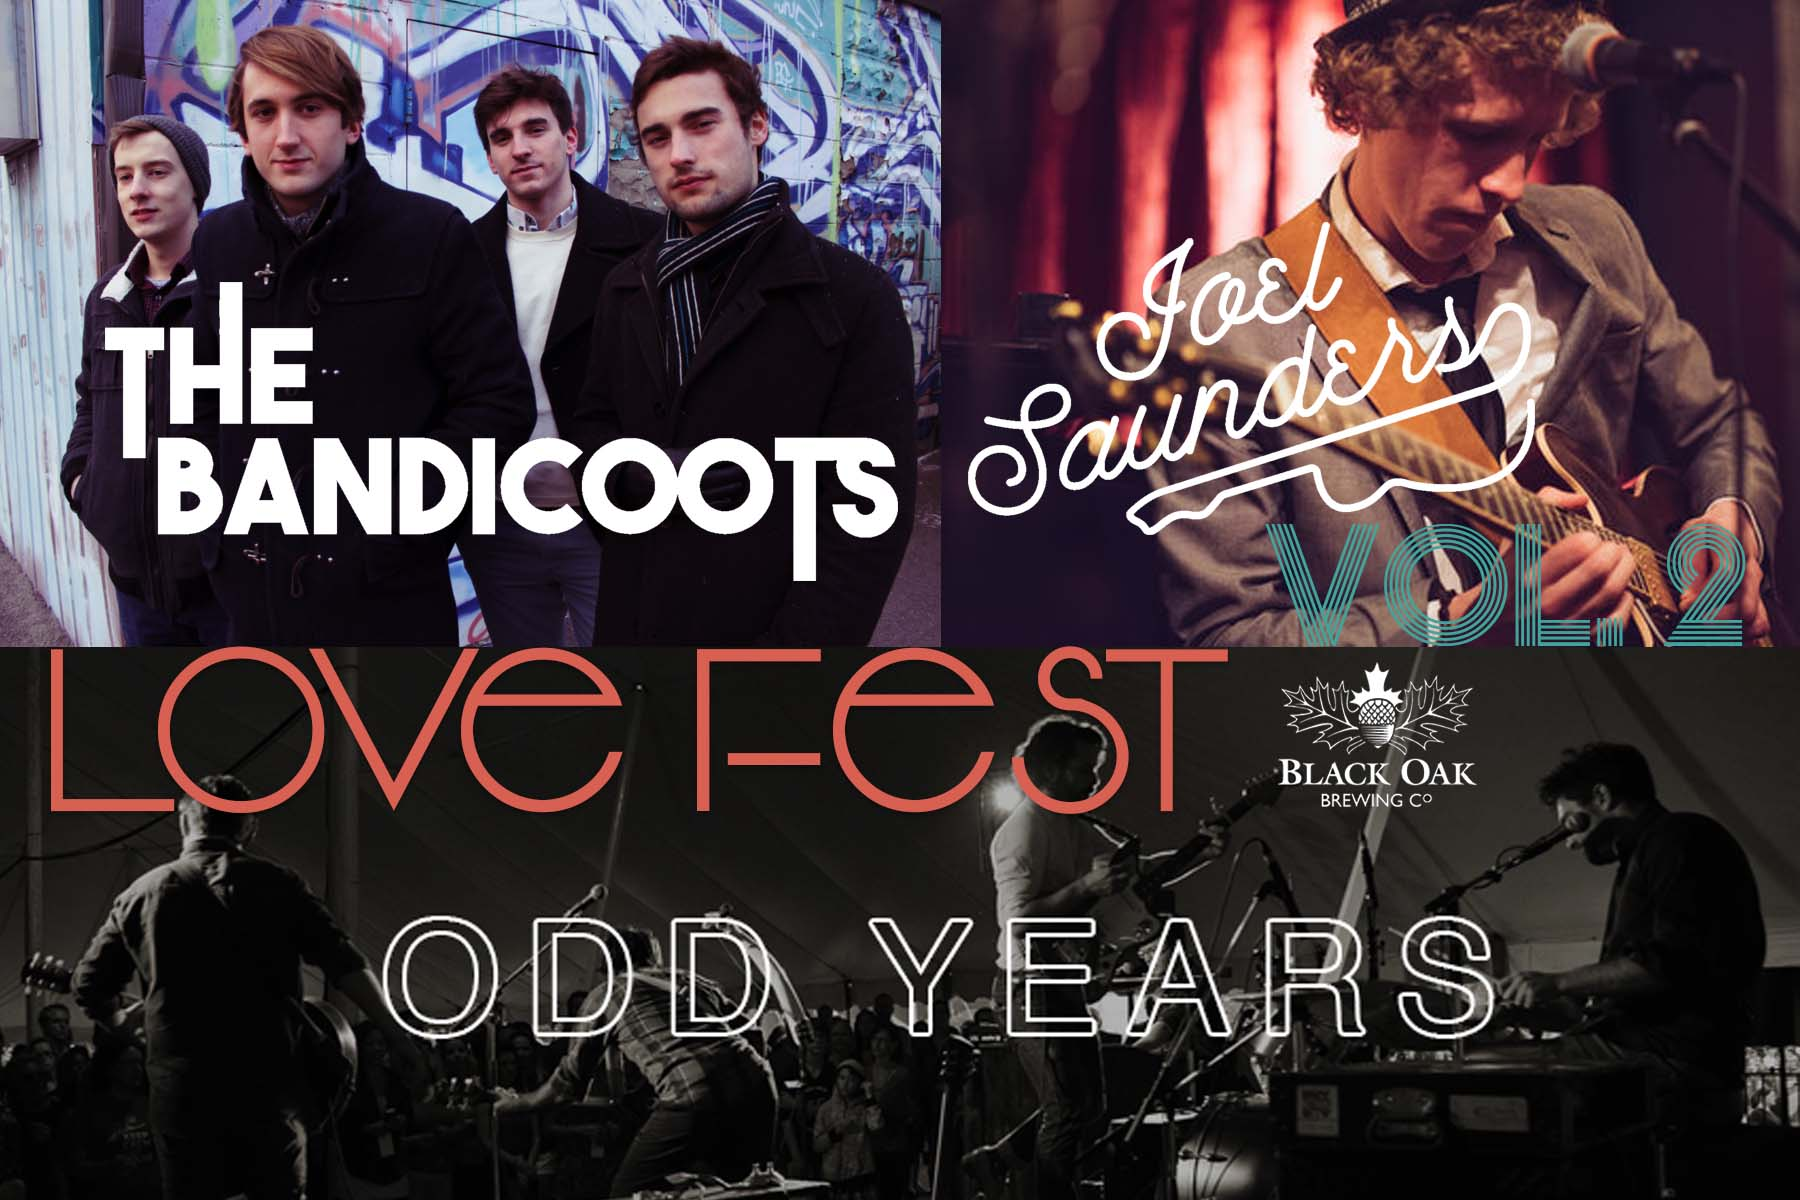 Love Fest Vol. 2 Bands